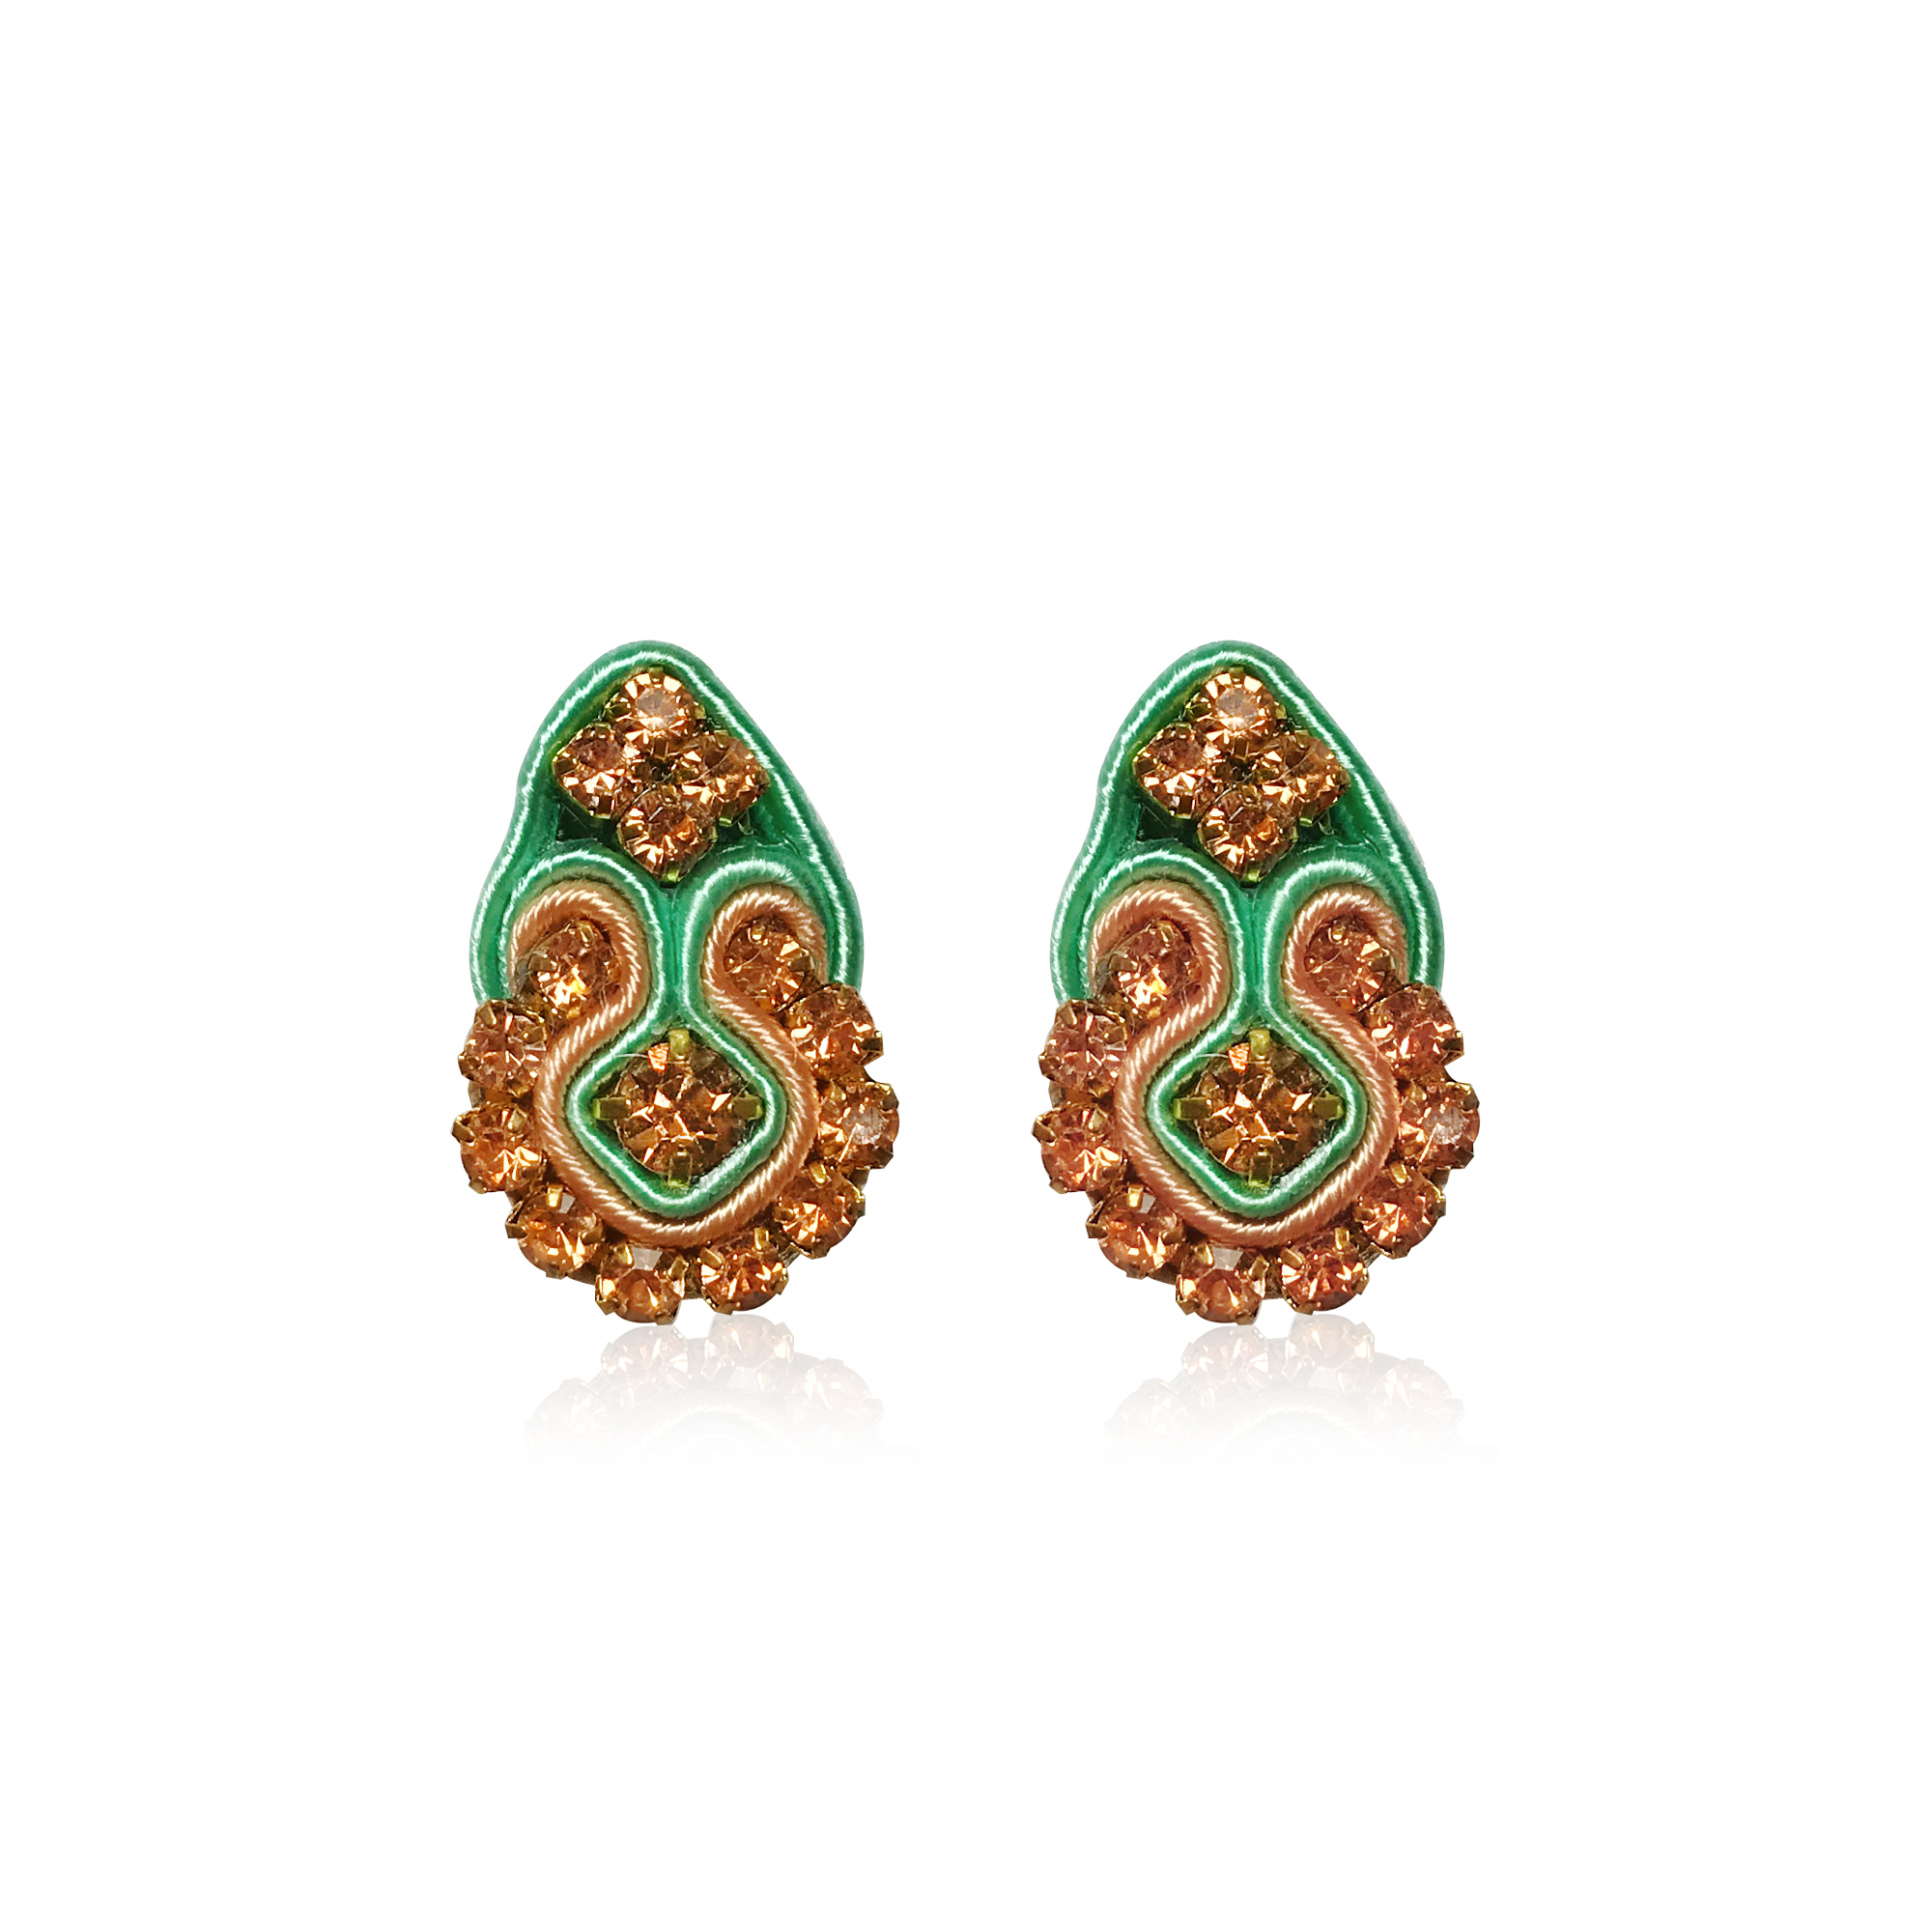 Mini Fiore Melon Earrings